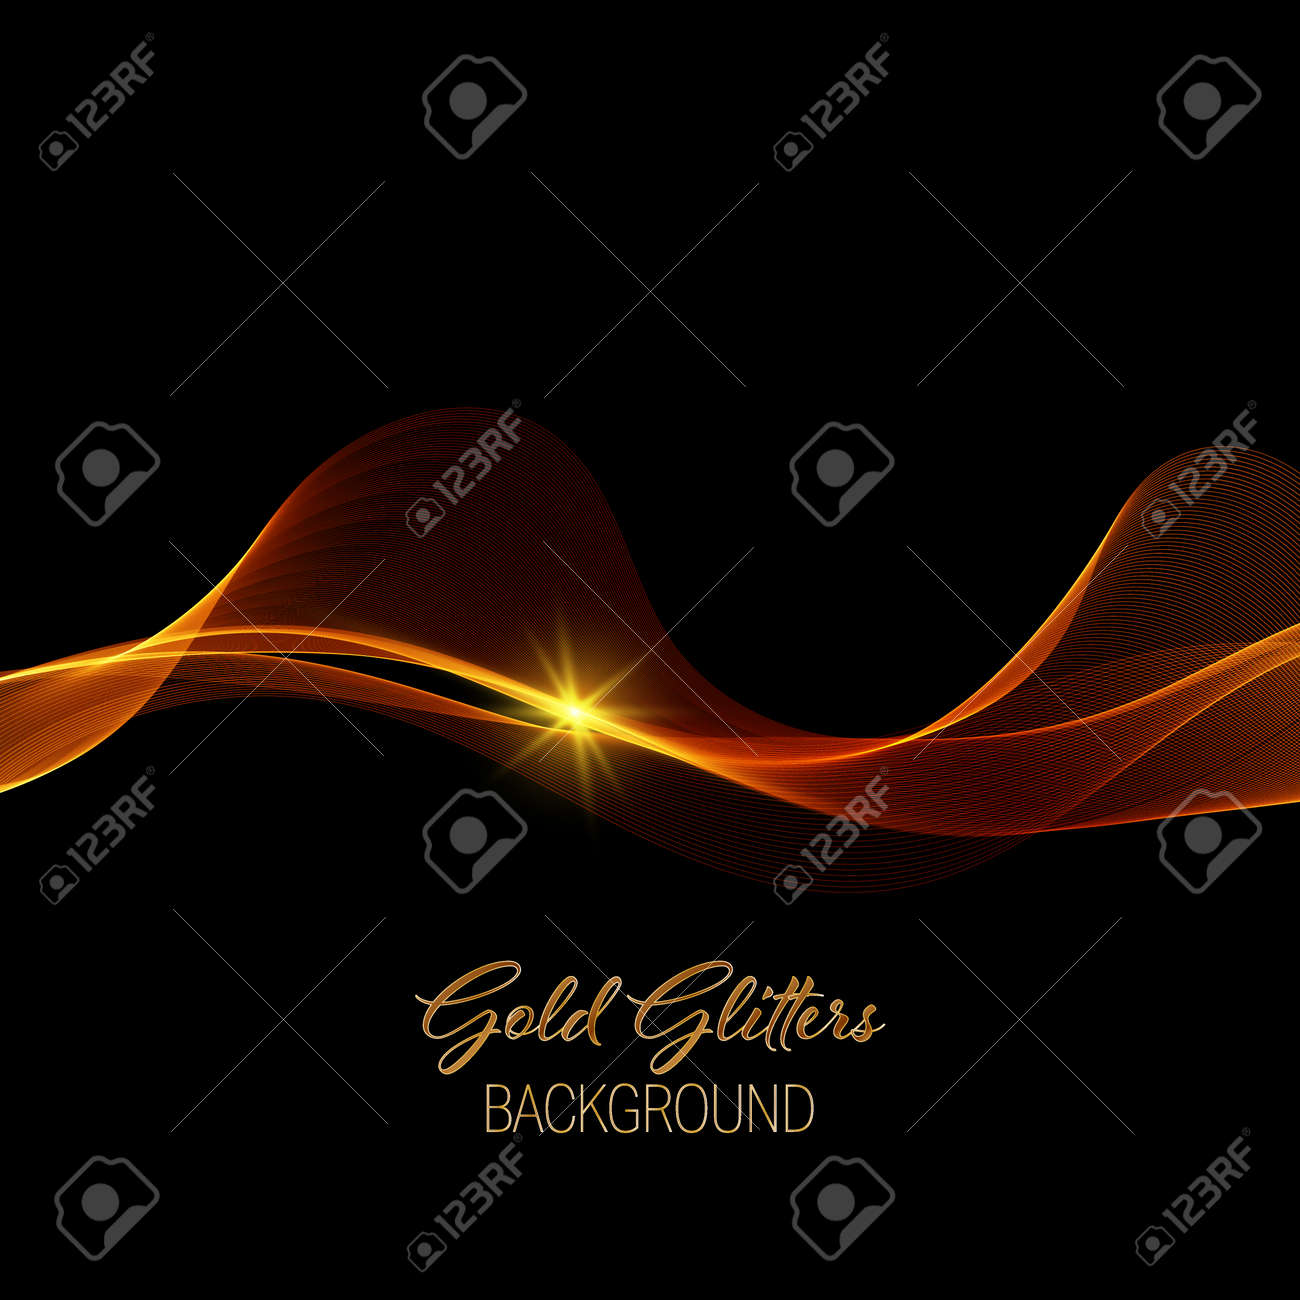 Abstract shiny color gold wave design element with gold glitter effect on dark background. - 165552990